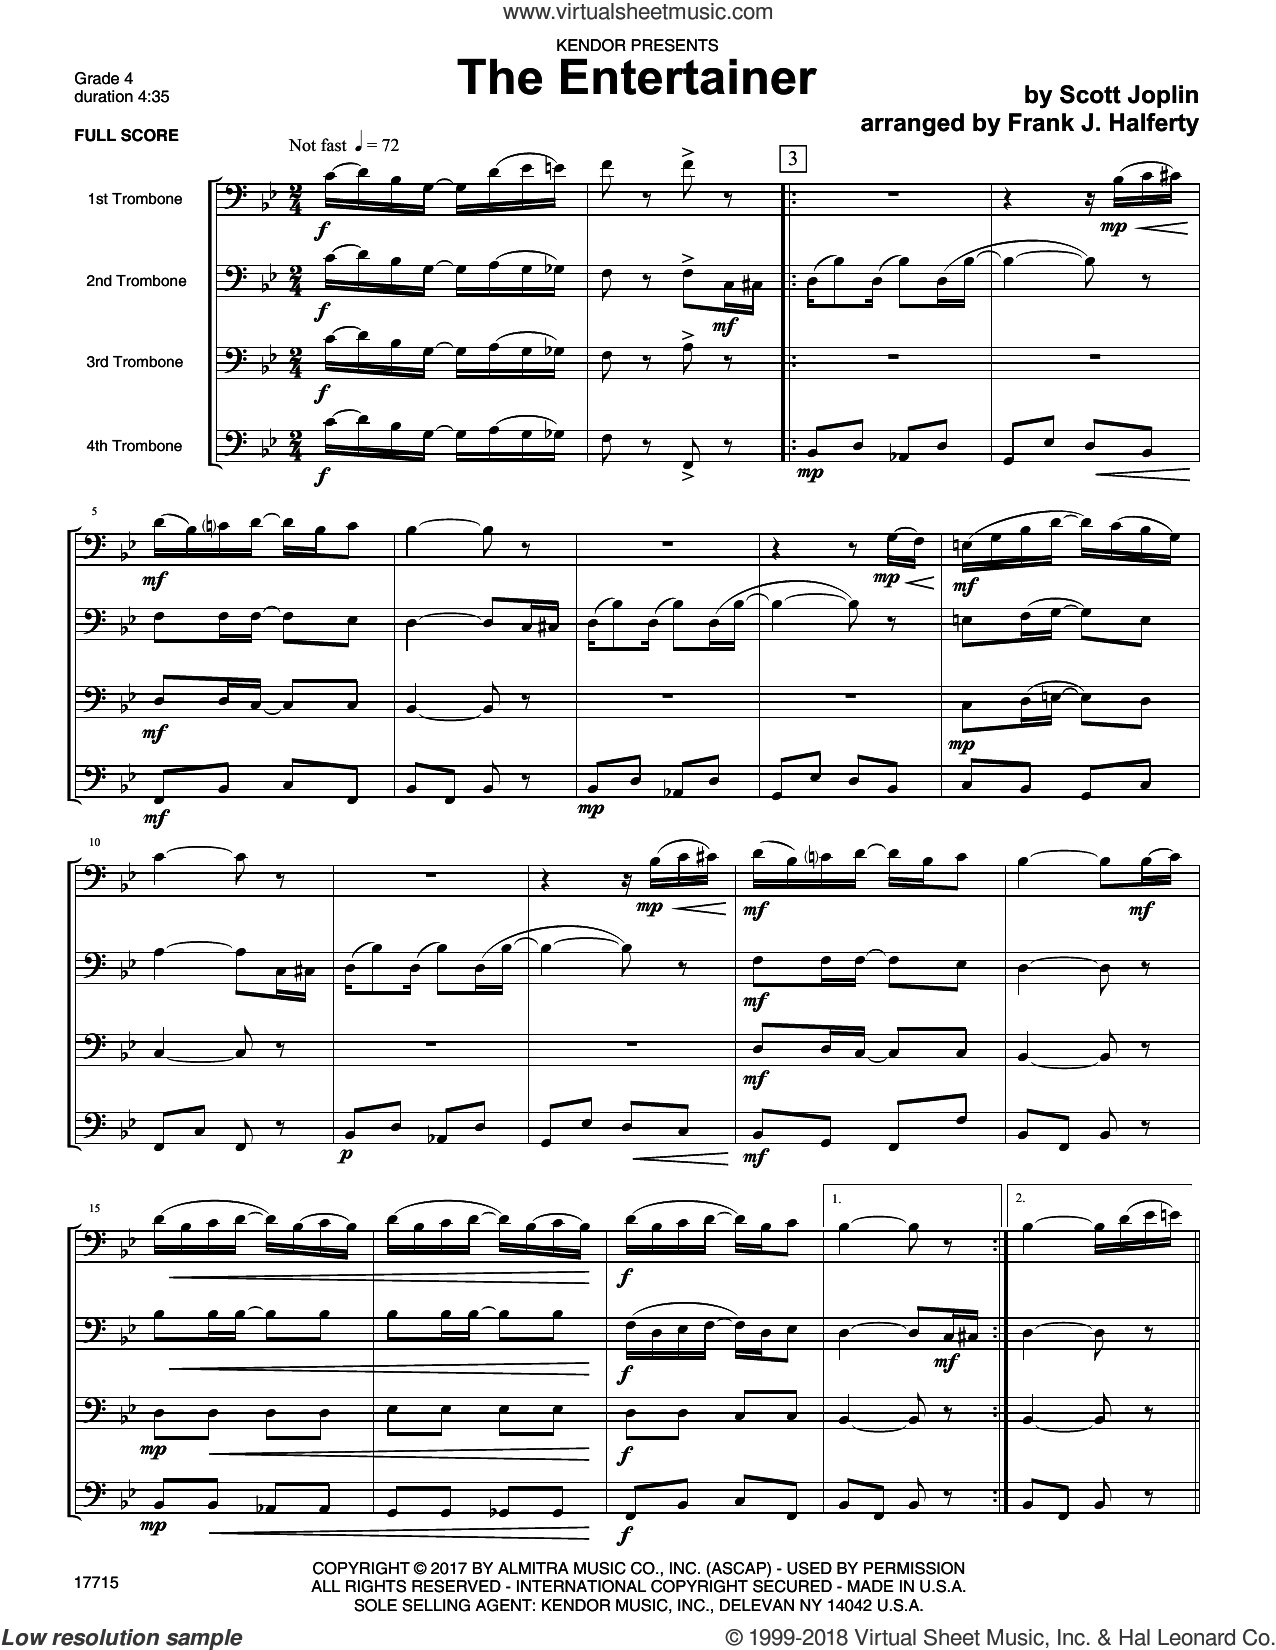 The Entertainer (COMPLETE) sheet music for four trombones by Frank J. Halferty and Scott Joplin, intermediate four trombones. Score Image Preview.